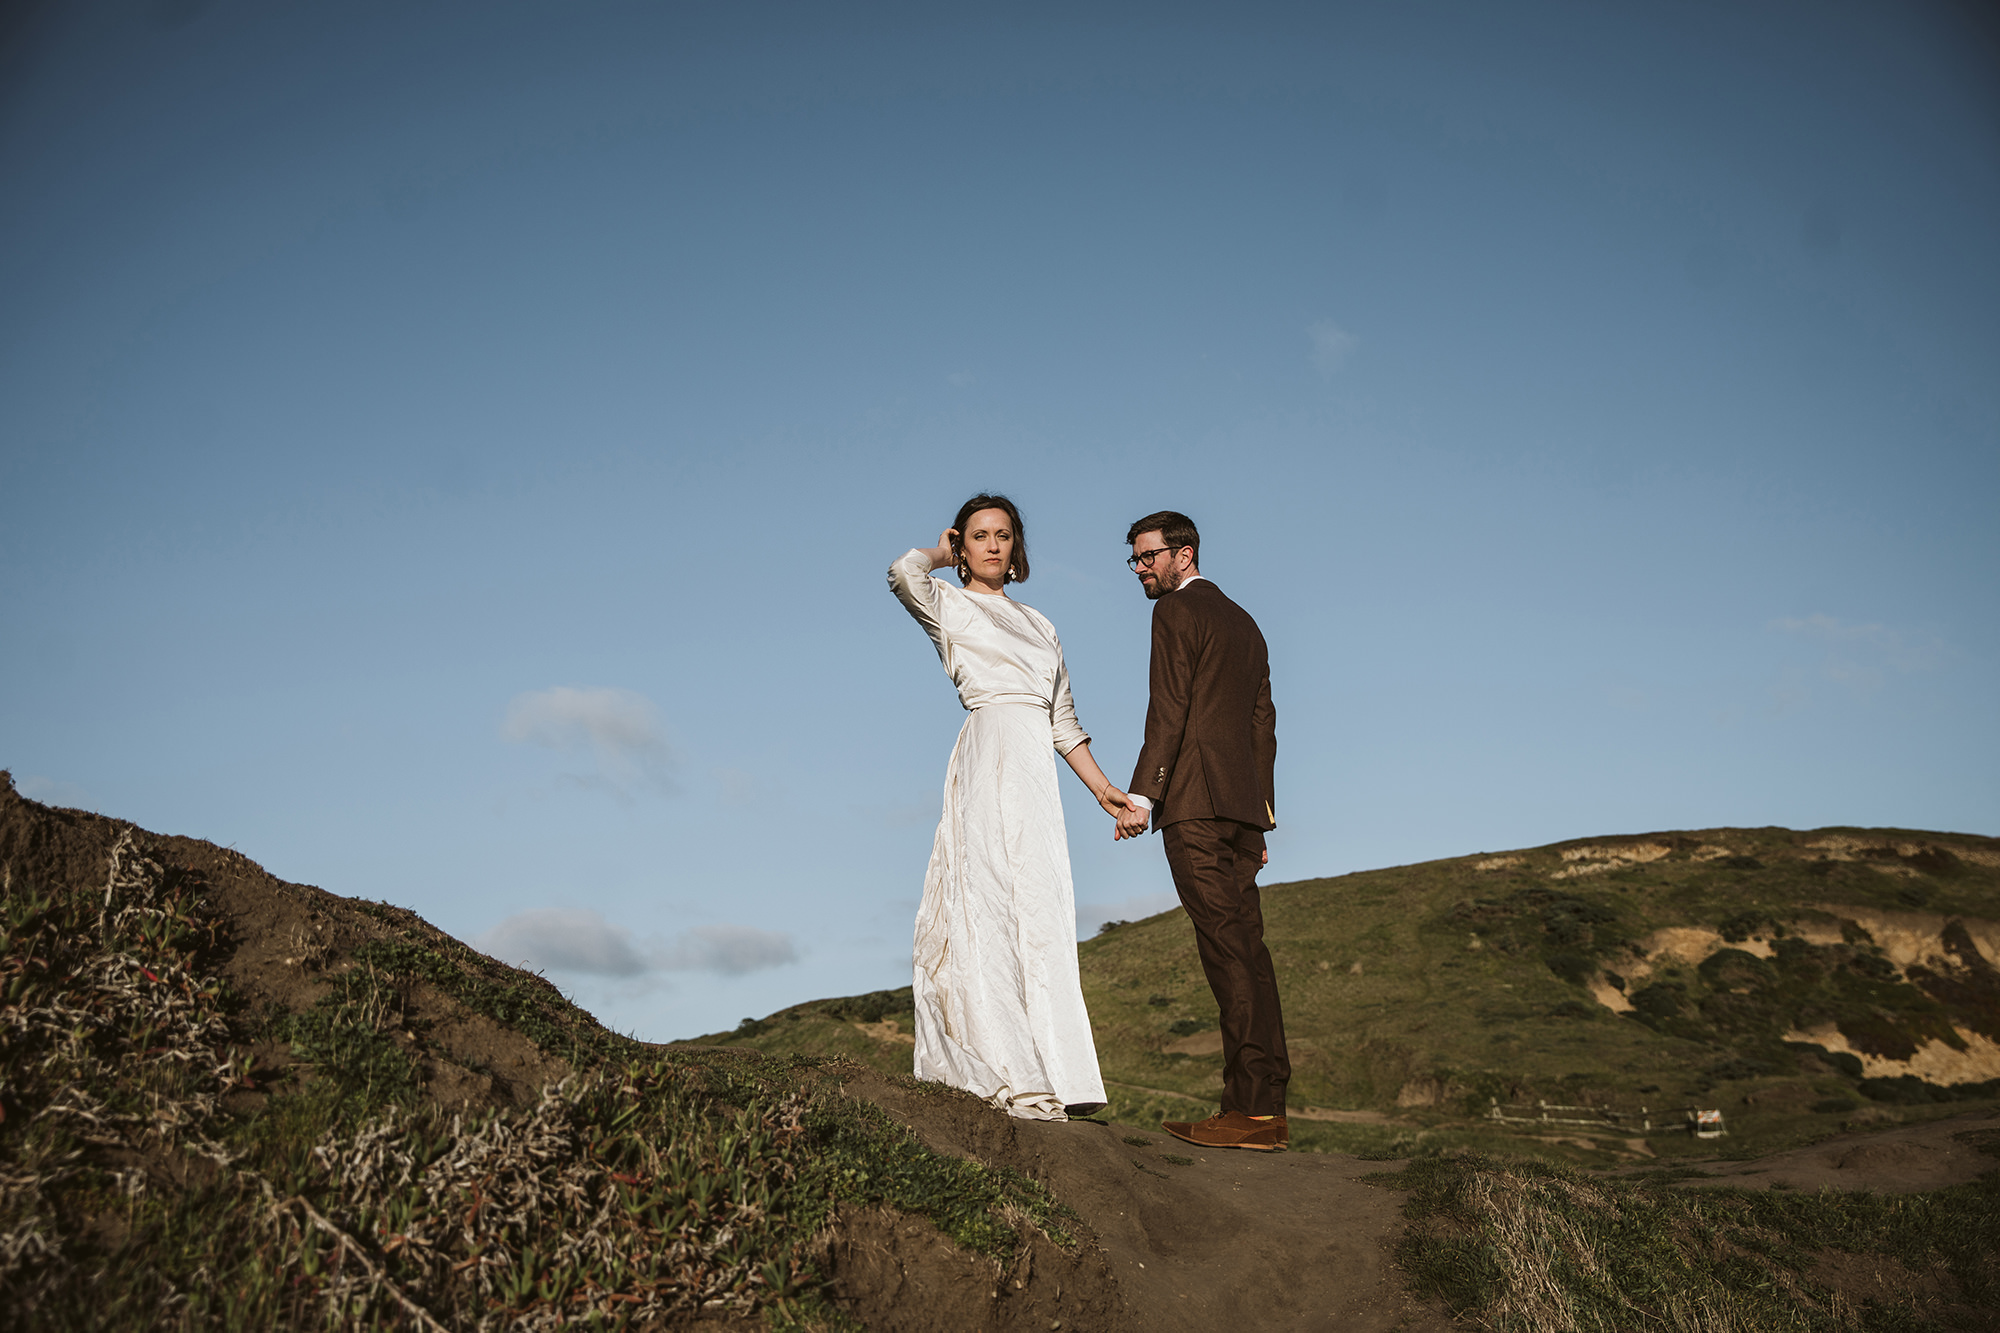 Bride taking in the scene atop the cliff during their Point Reyes elopement.